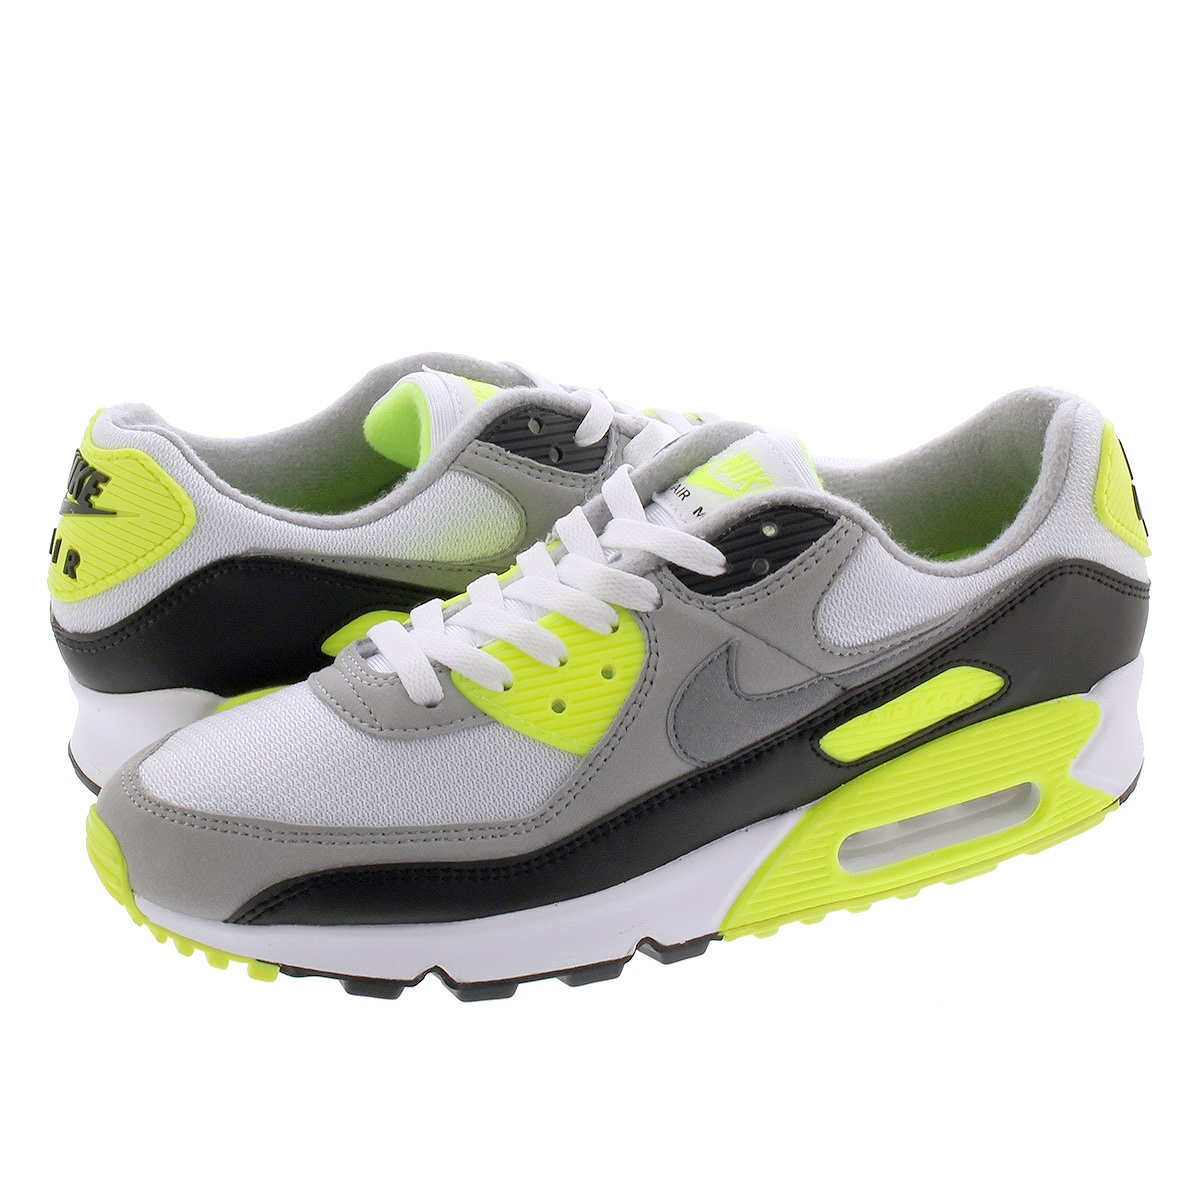 NIKE AIR MAX 90 【30TH ANNIVERSARY】 ナイキ エア マックス 90 WHITE/PARTICLE GREY/VOLT cd0881-103